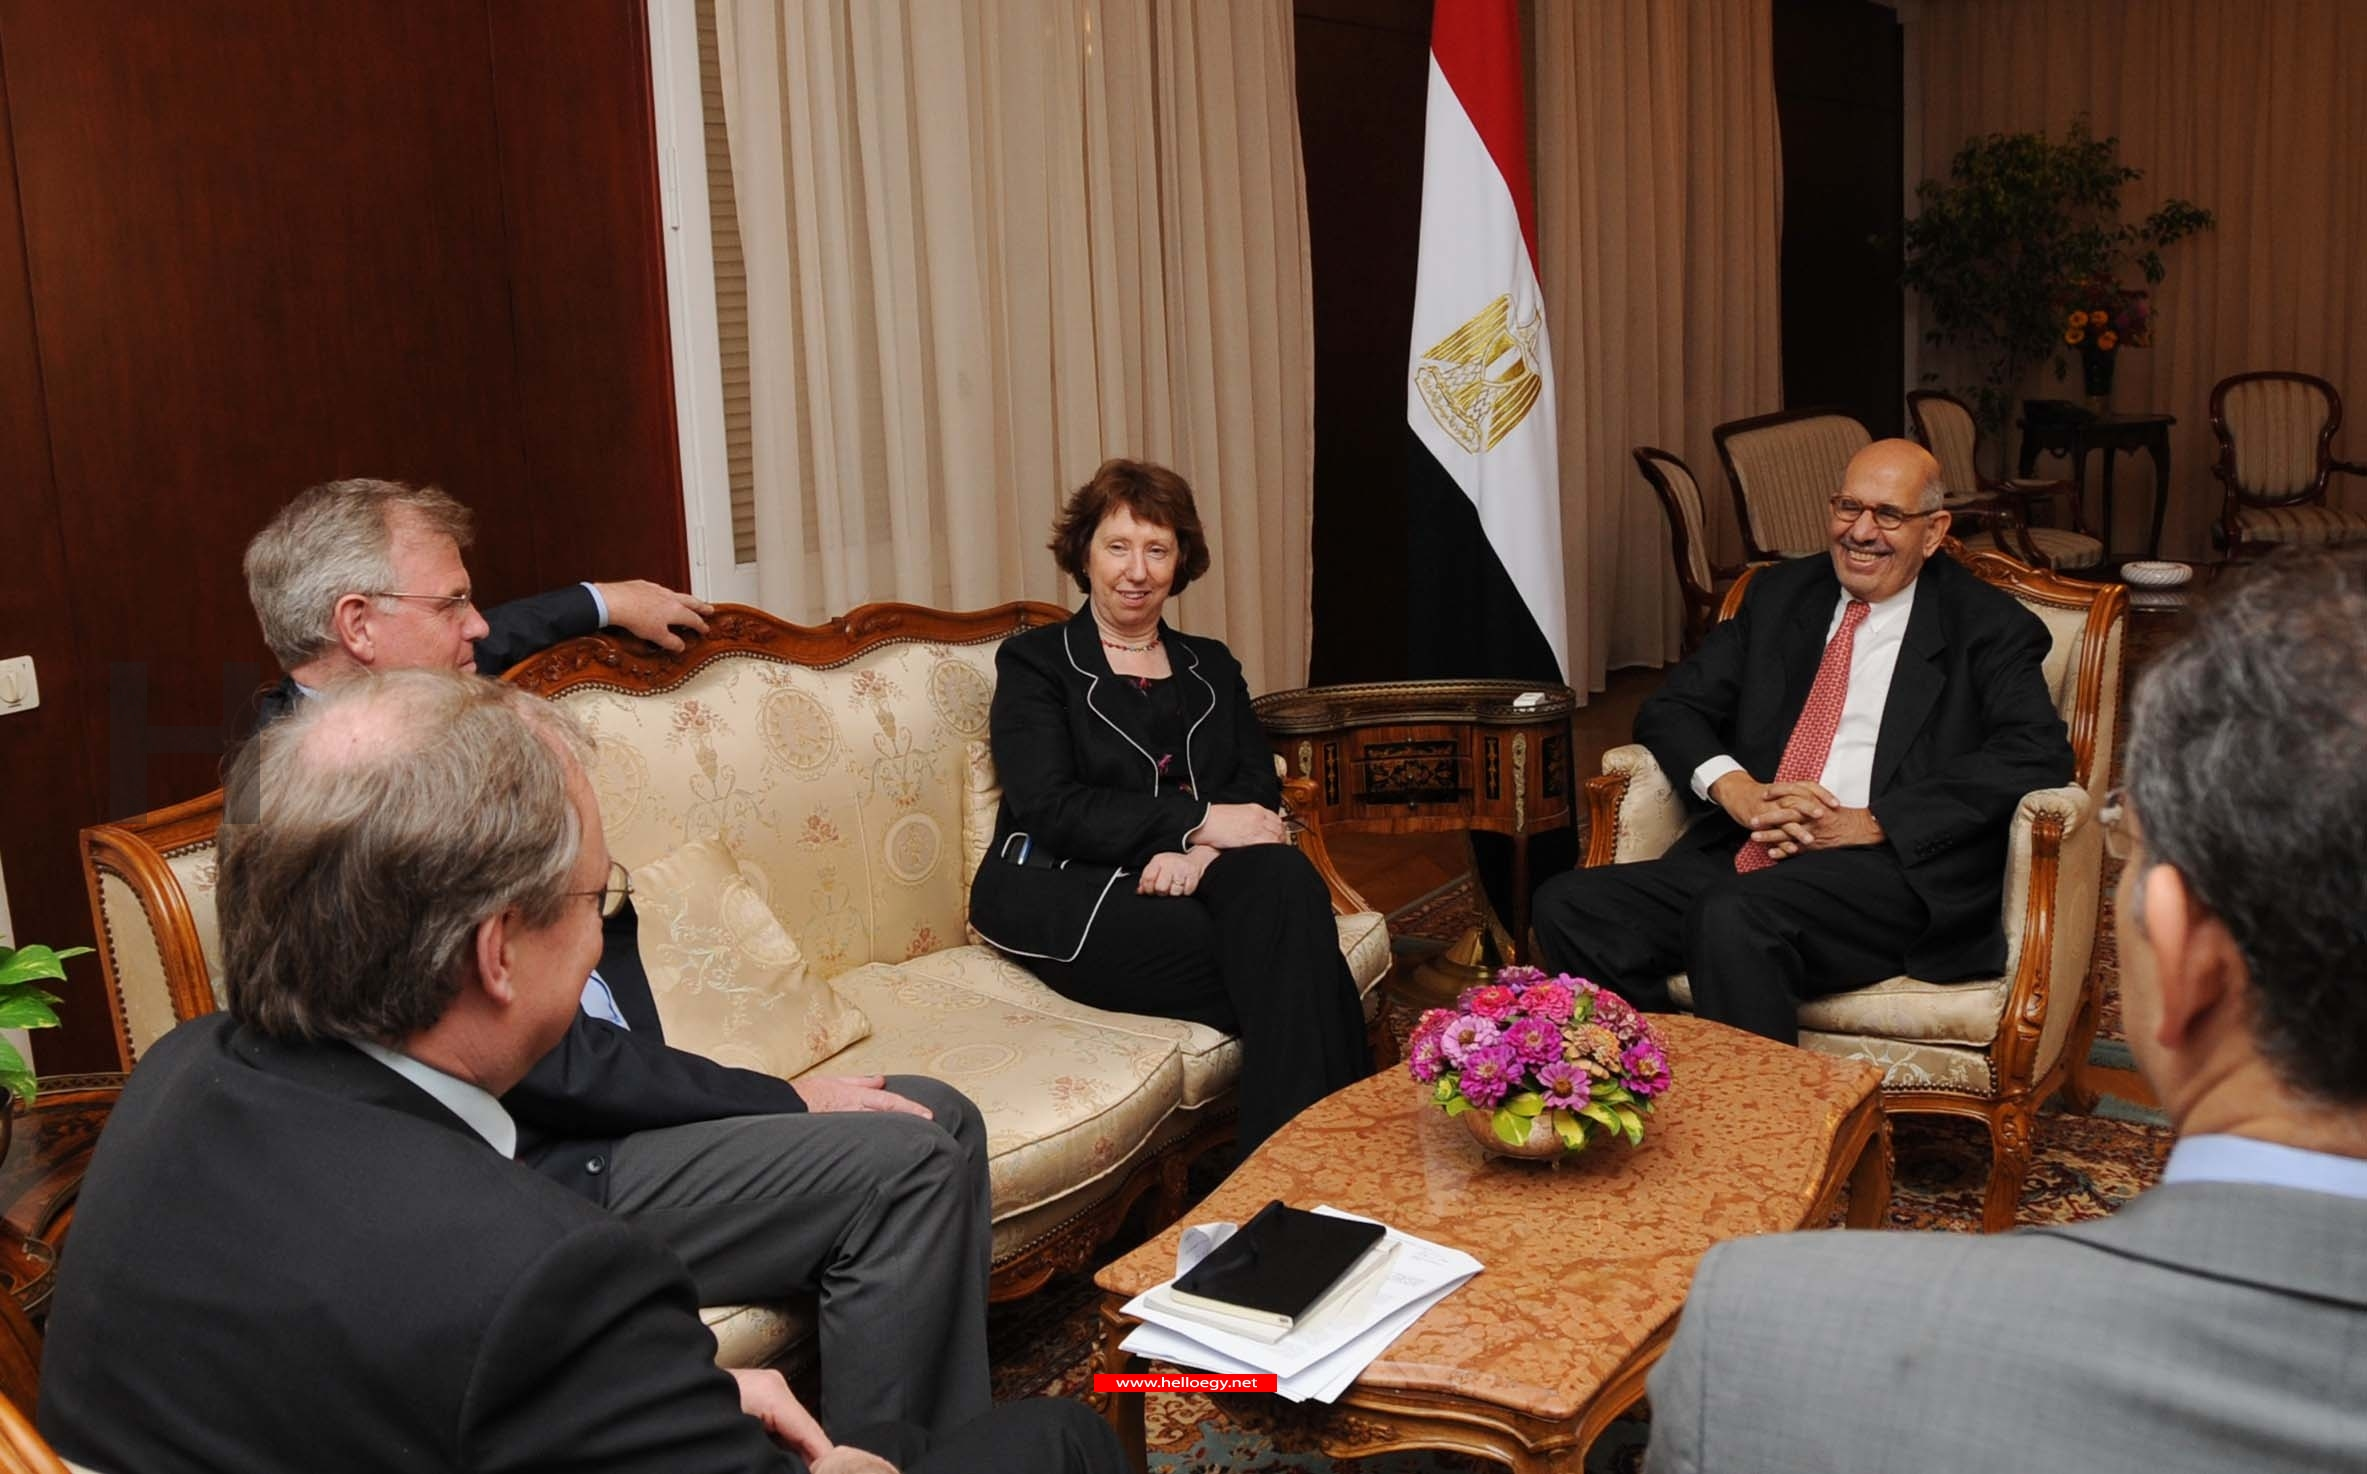 An interview with Mohamed ElBaradei, who hopes for reconciliation in Egypt